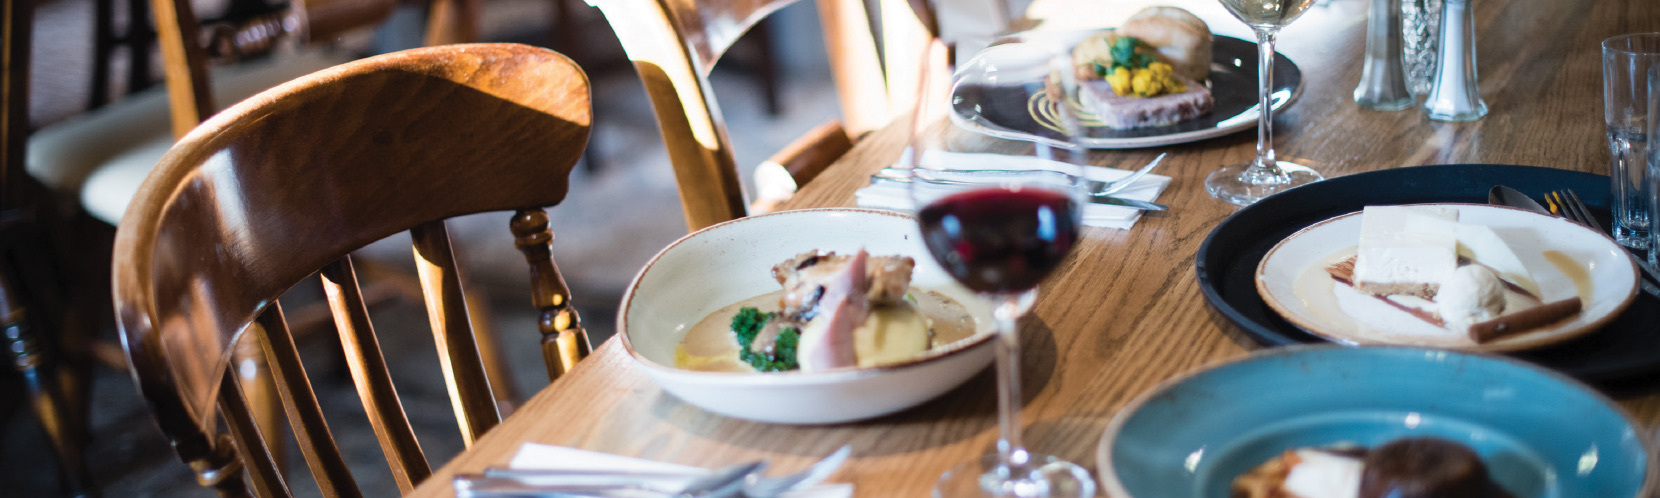 Eat at The Littleton Arms